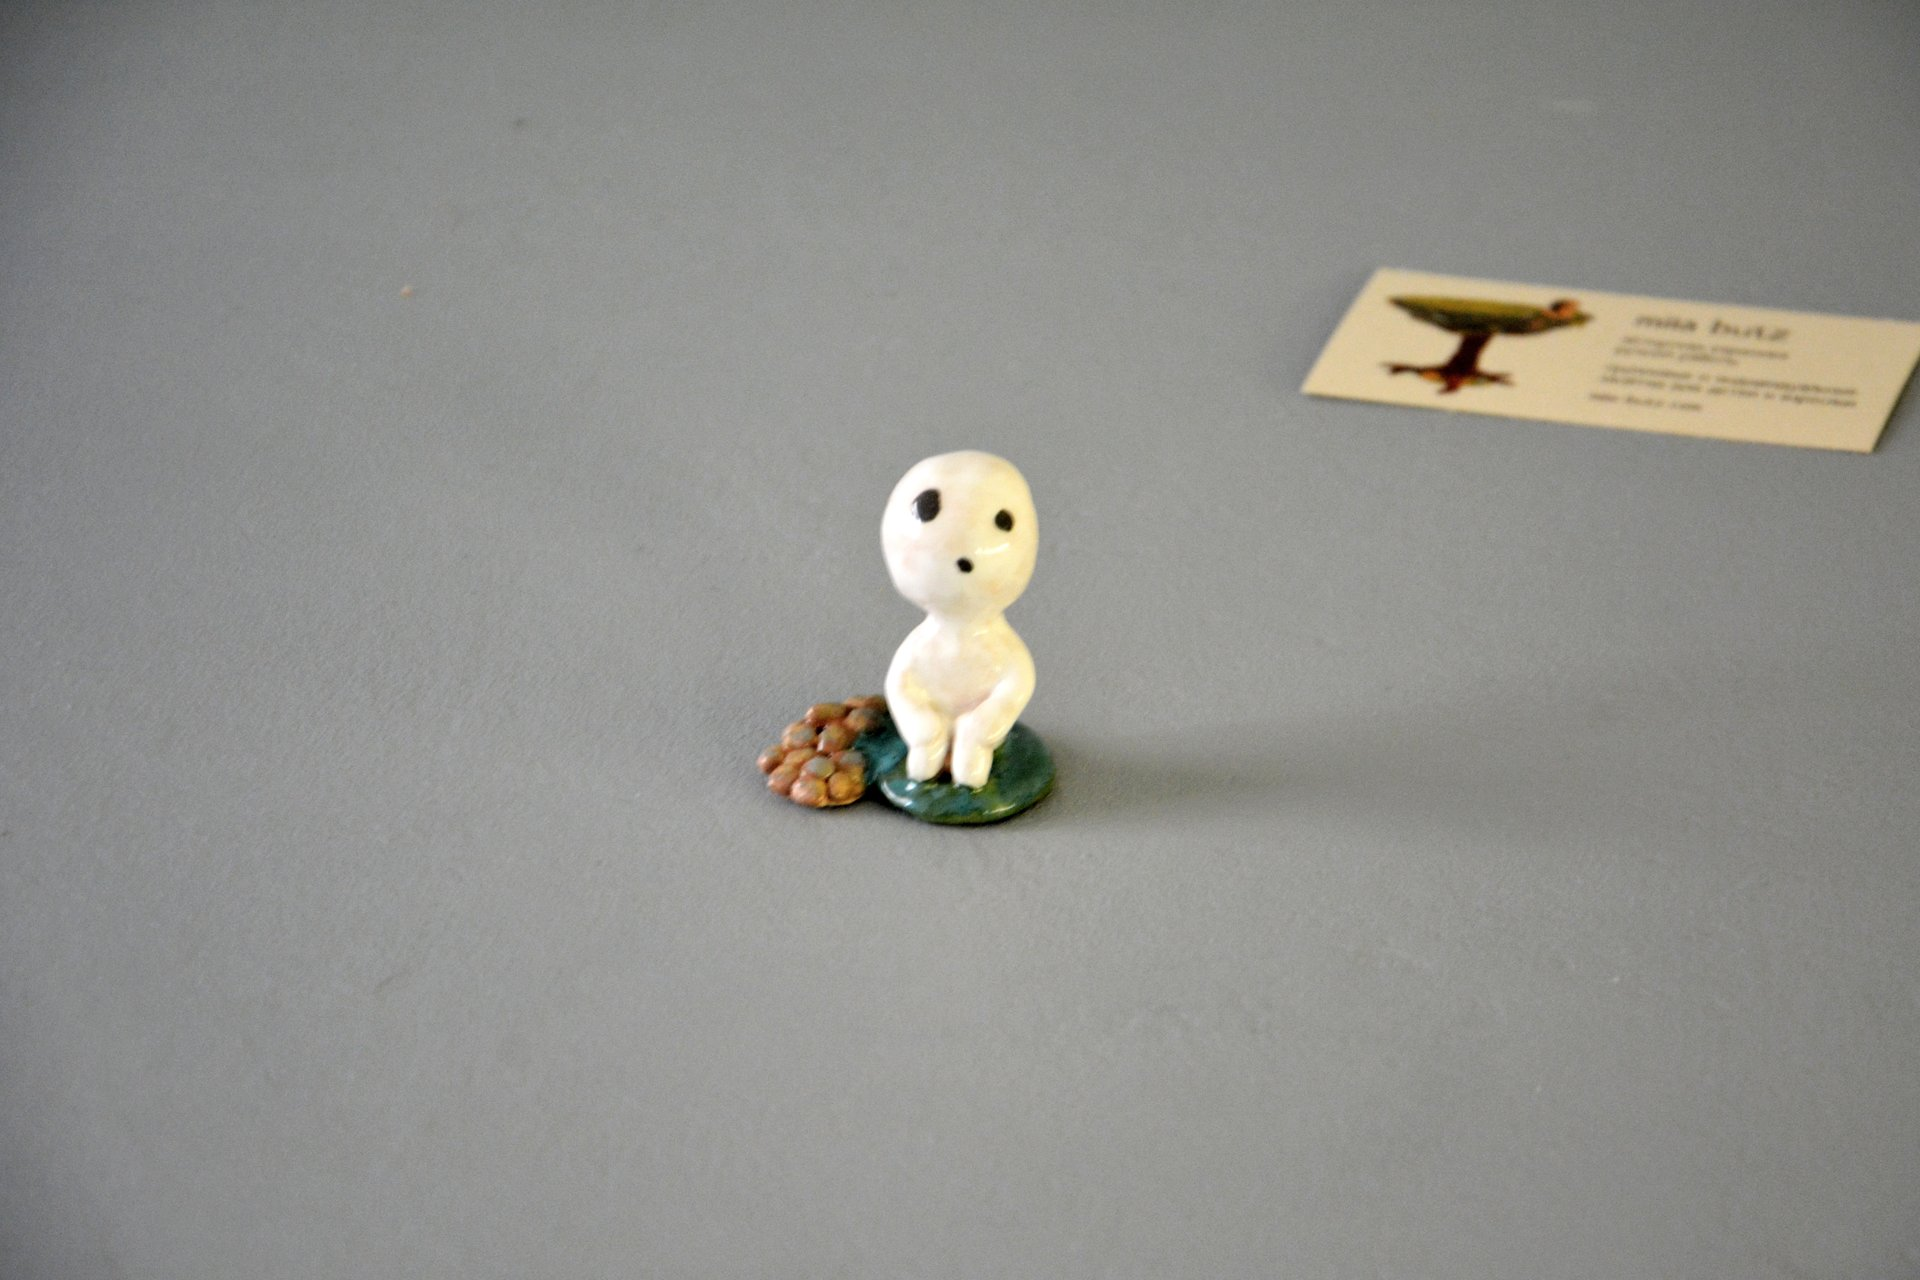 Figurine Toddler Kodama Spirit Tree, height - 5 cm, photo 1 of 4.